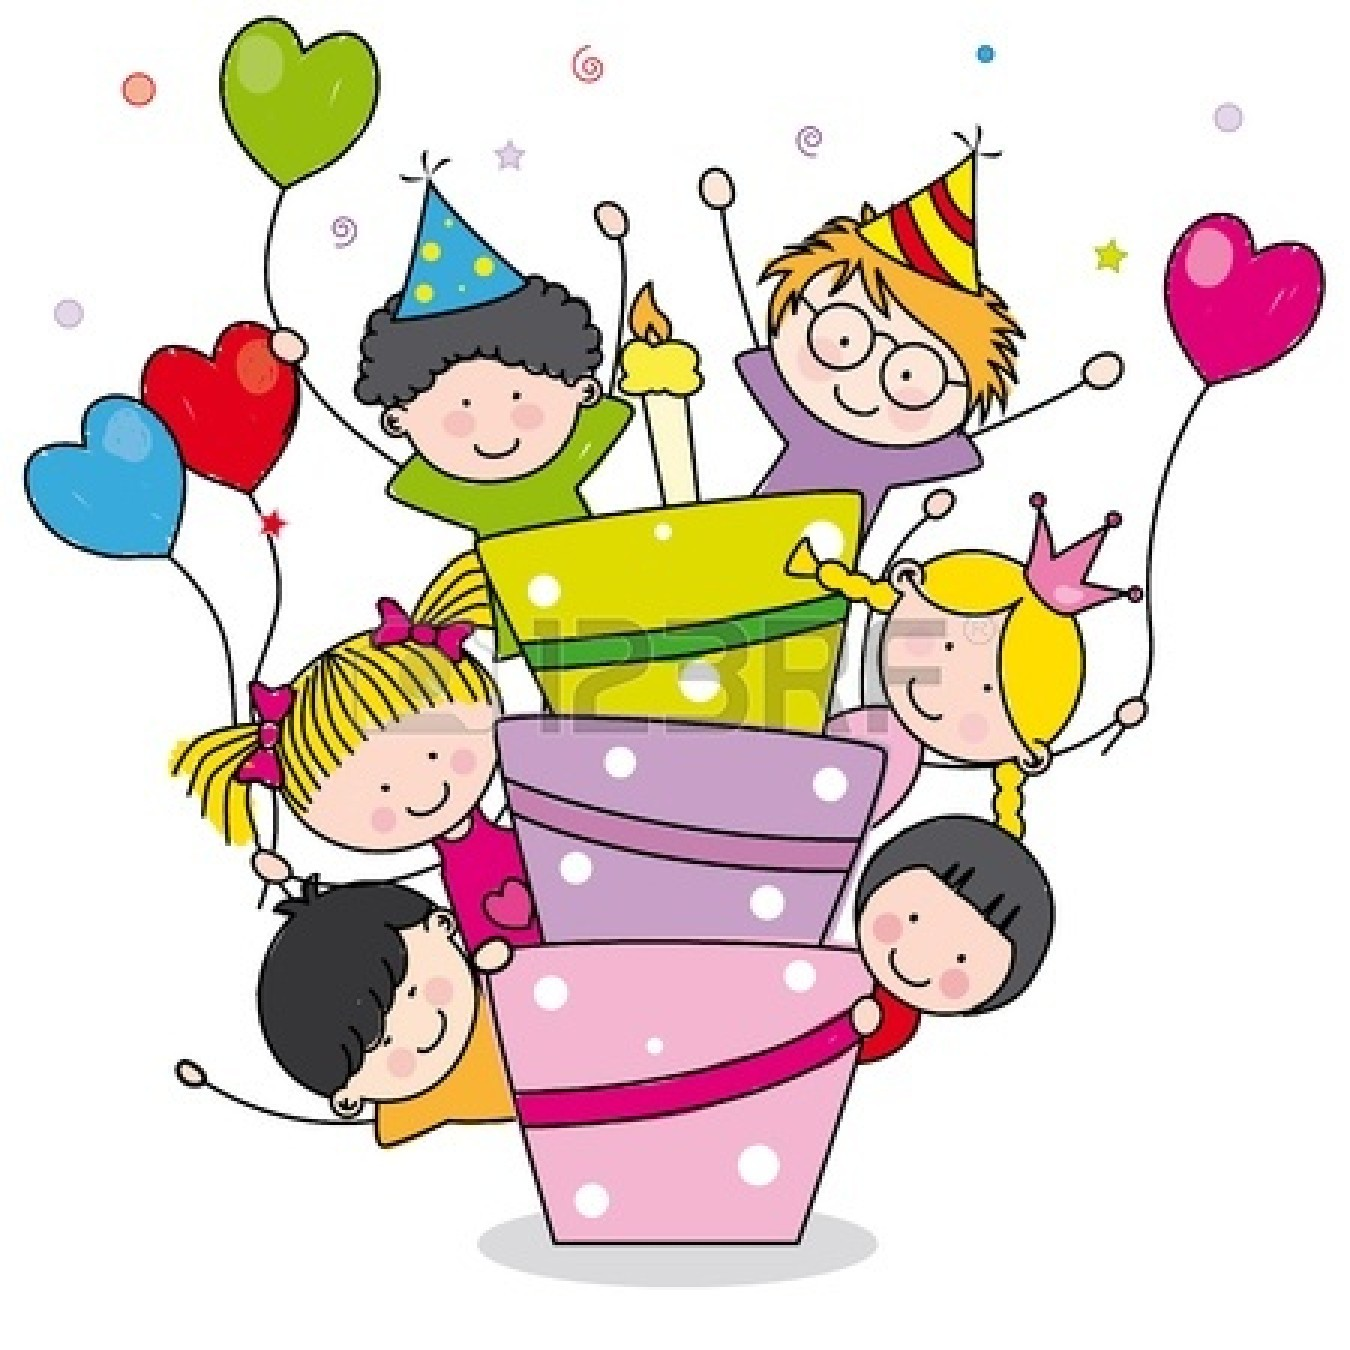 Free download best on. Surprise clipart birthday wallpaper